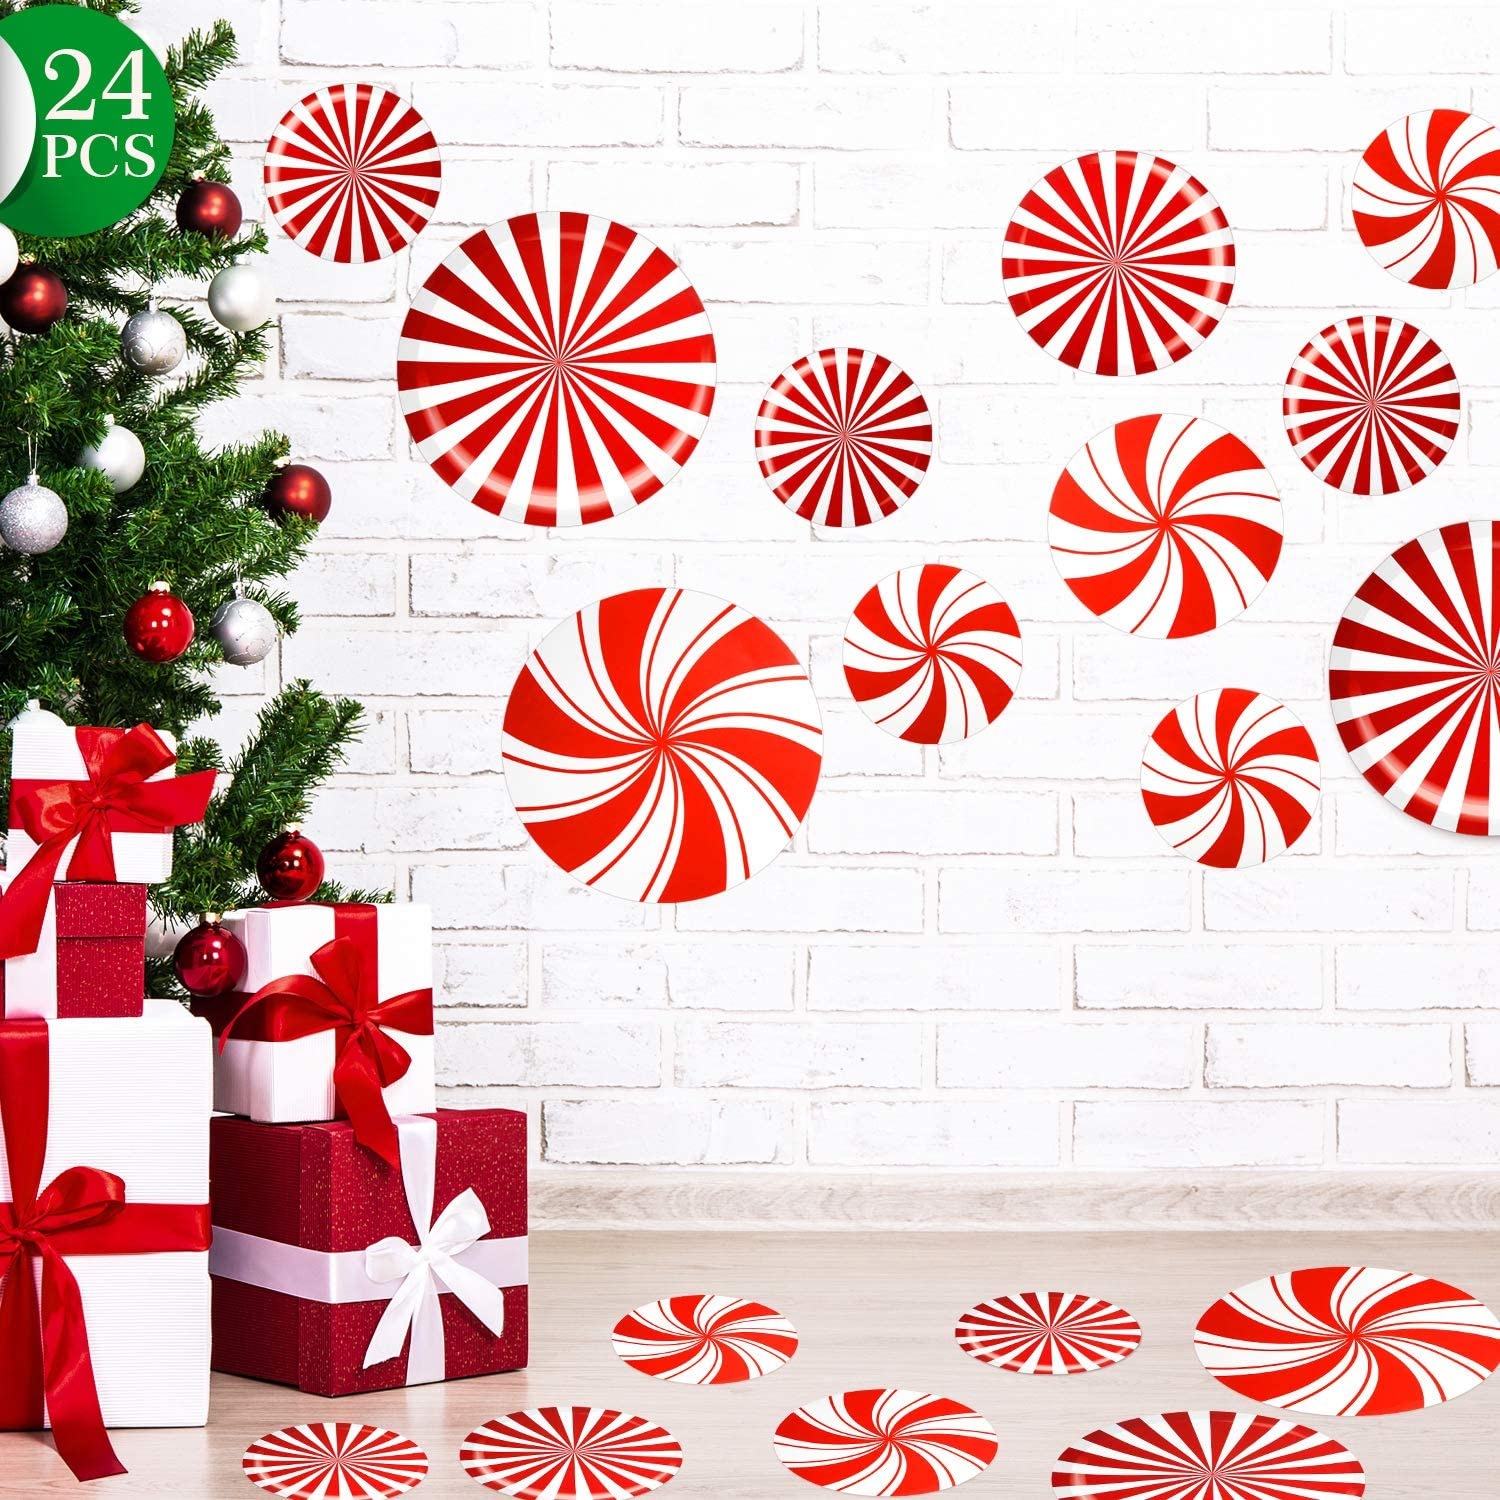 Outus 24 Pieces Peppermint Floor Decals Stickers for Christmas Decoration Candy Party Supply Red and White Large Decals for Floors, Windows, Counters and Walls (Straight and Bent Stripes A)